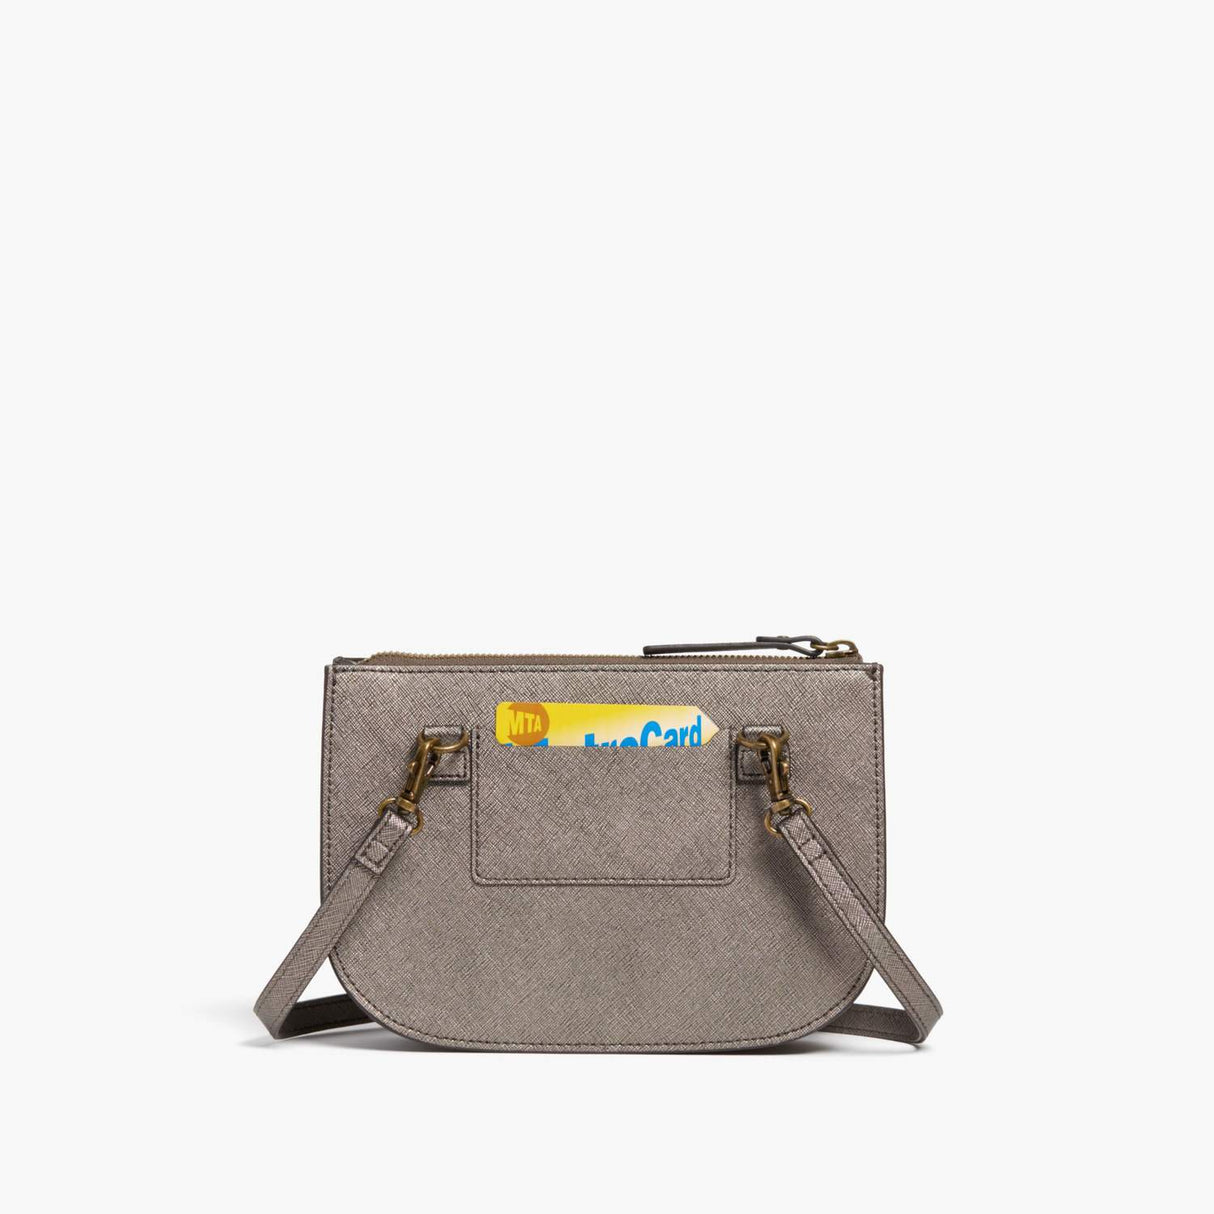 Back Card Slot - Waverley 2 - Saffiano Leather - Graphite / Brass / Grey - Crossbody Bag - Lo & Sons